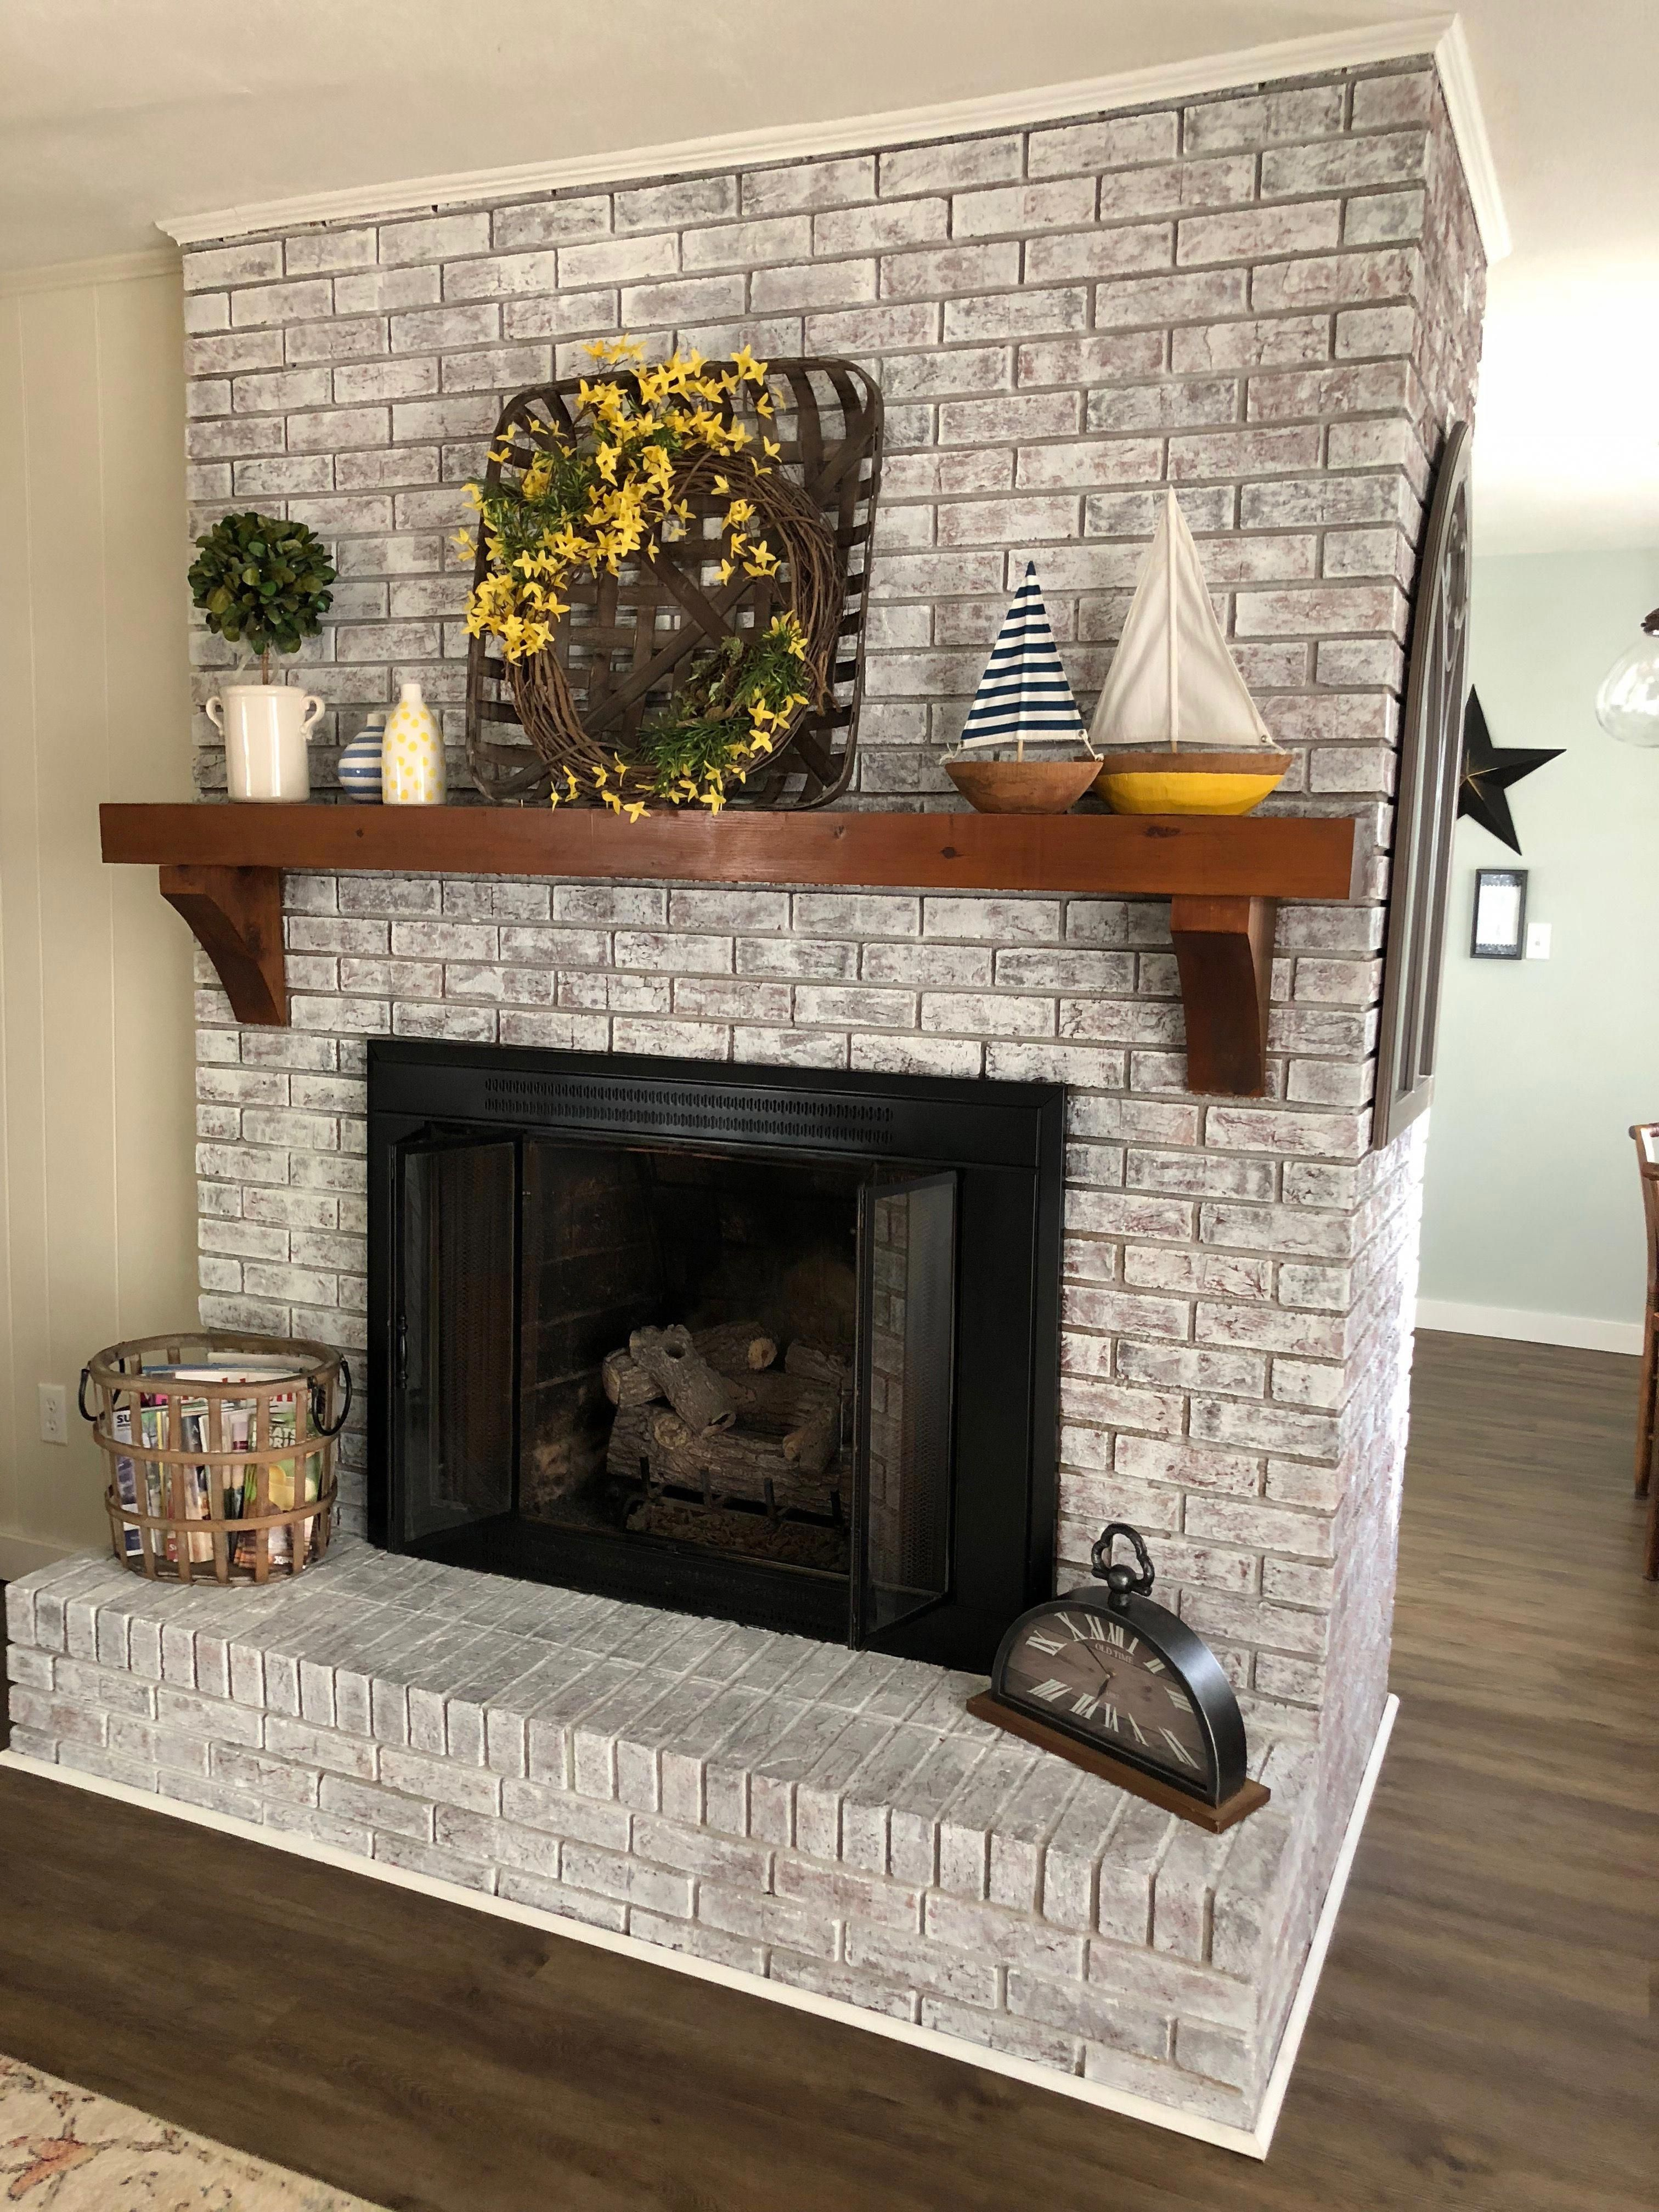 Painted Fireplaces before and after Beautiful Painted Brick Fireplace Sw Pure White Over Dark Red Brick